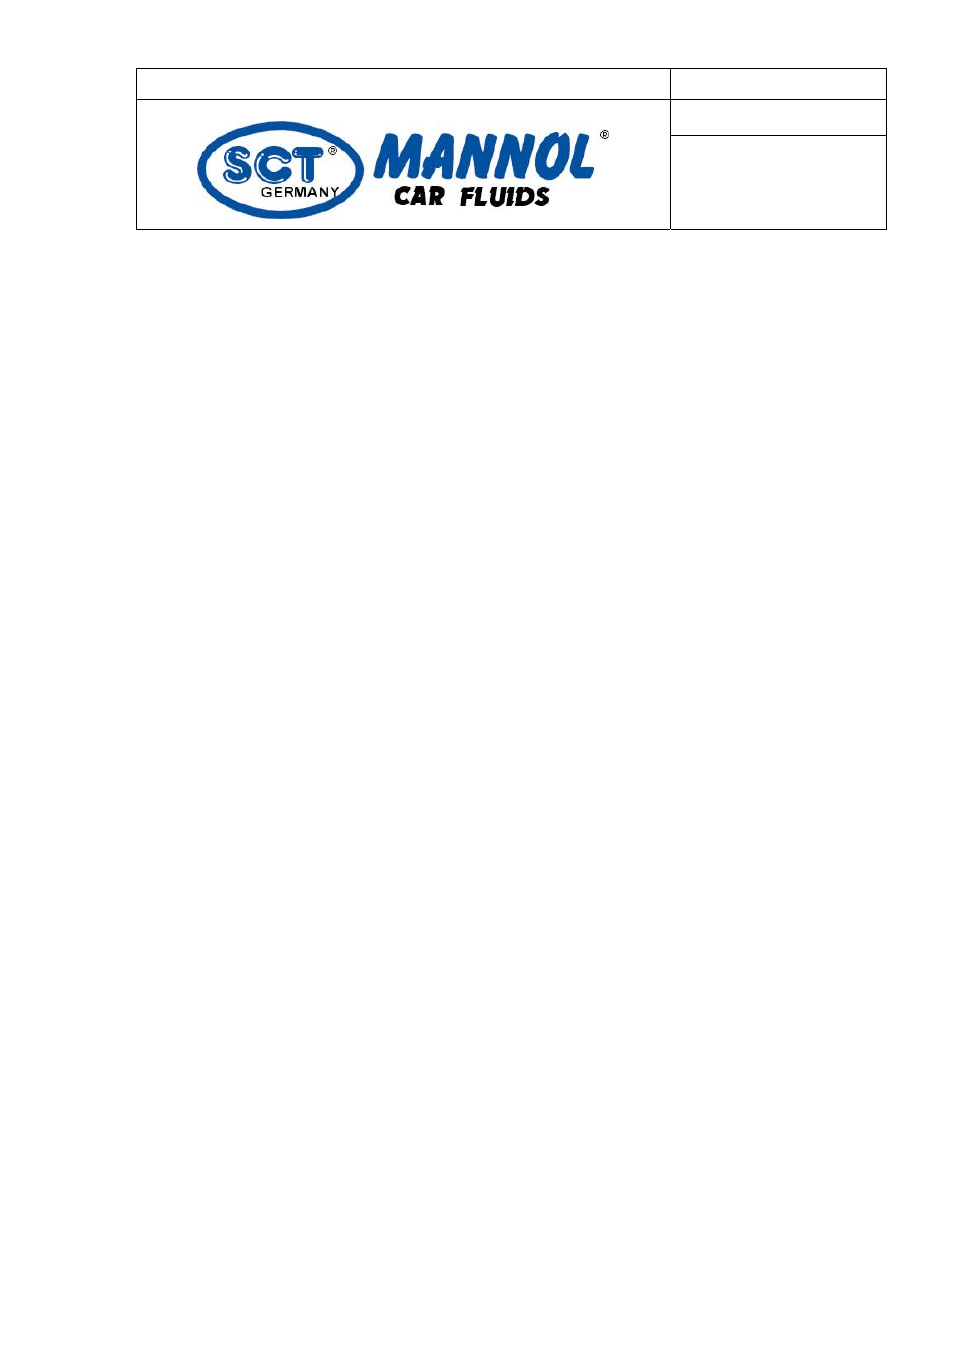 SCT-Germany DEFROSTER User Manual   4 pages